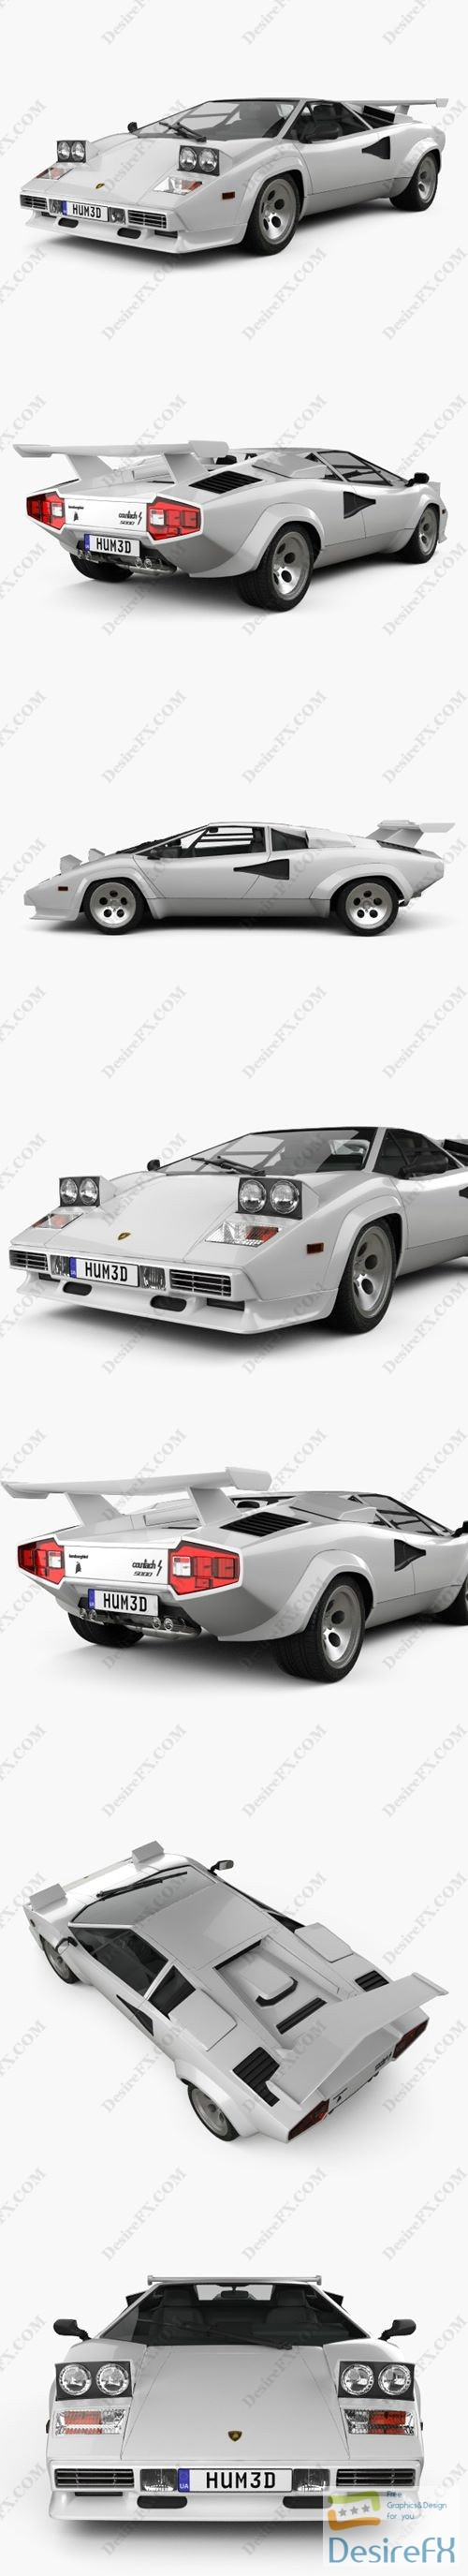 3d-models - Lamborghini Countach 5000 QV 1985 3D Model